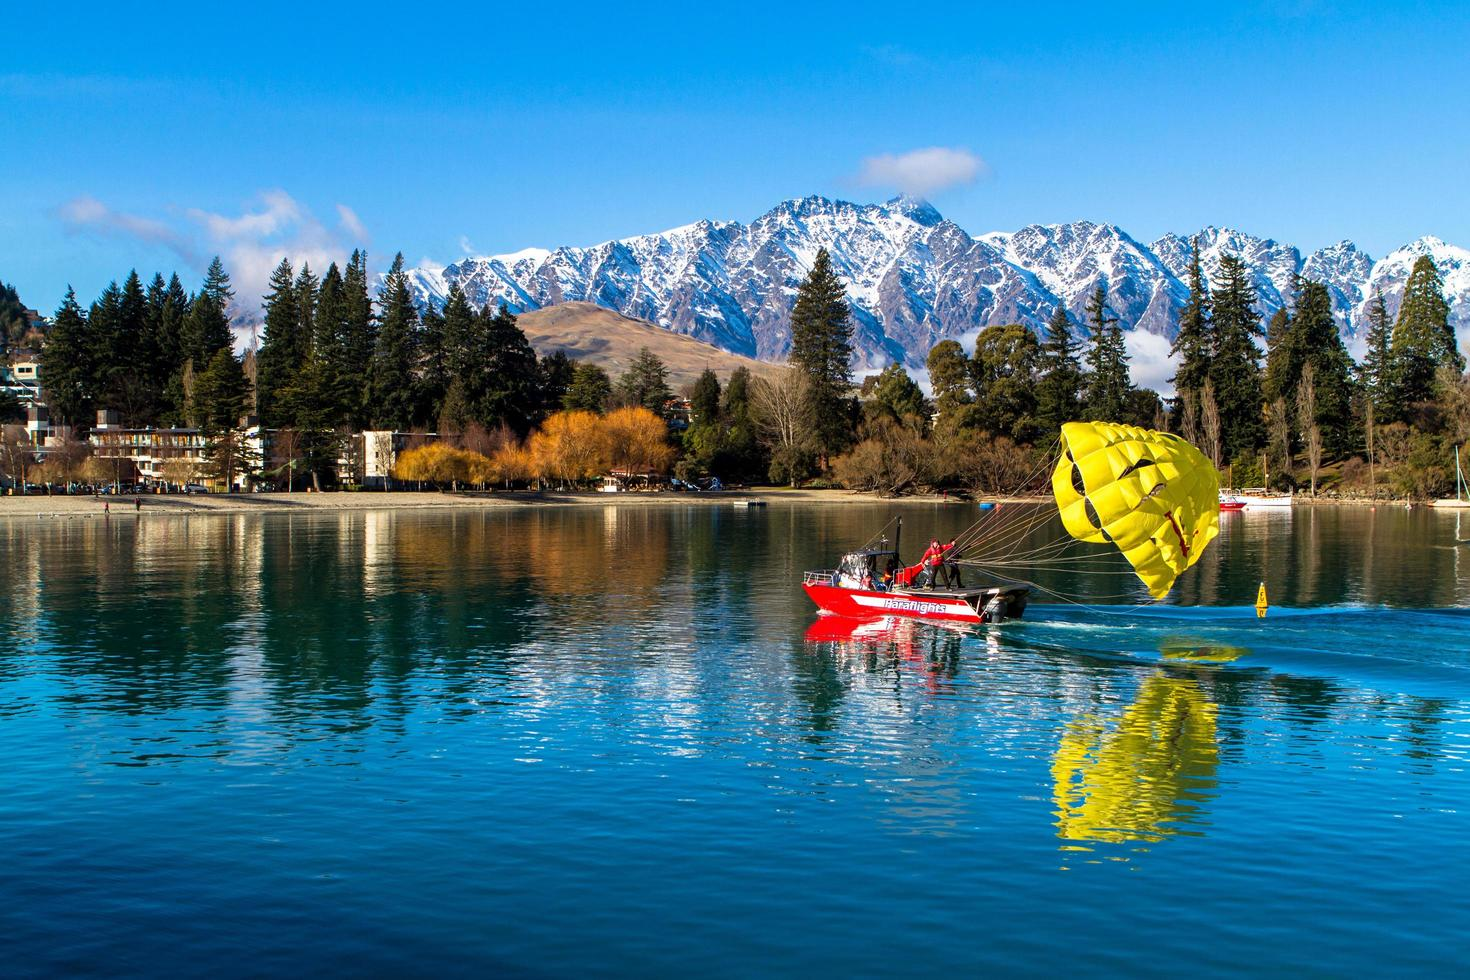 Queenstown, New Zealand, 2020 - Person getting ready to parasail from a boat photo